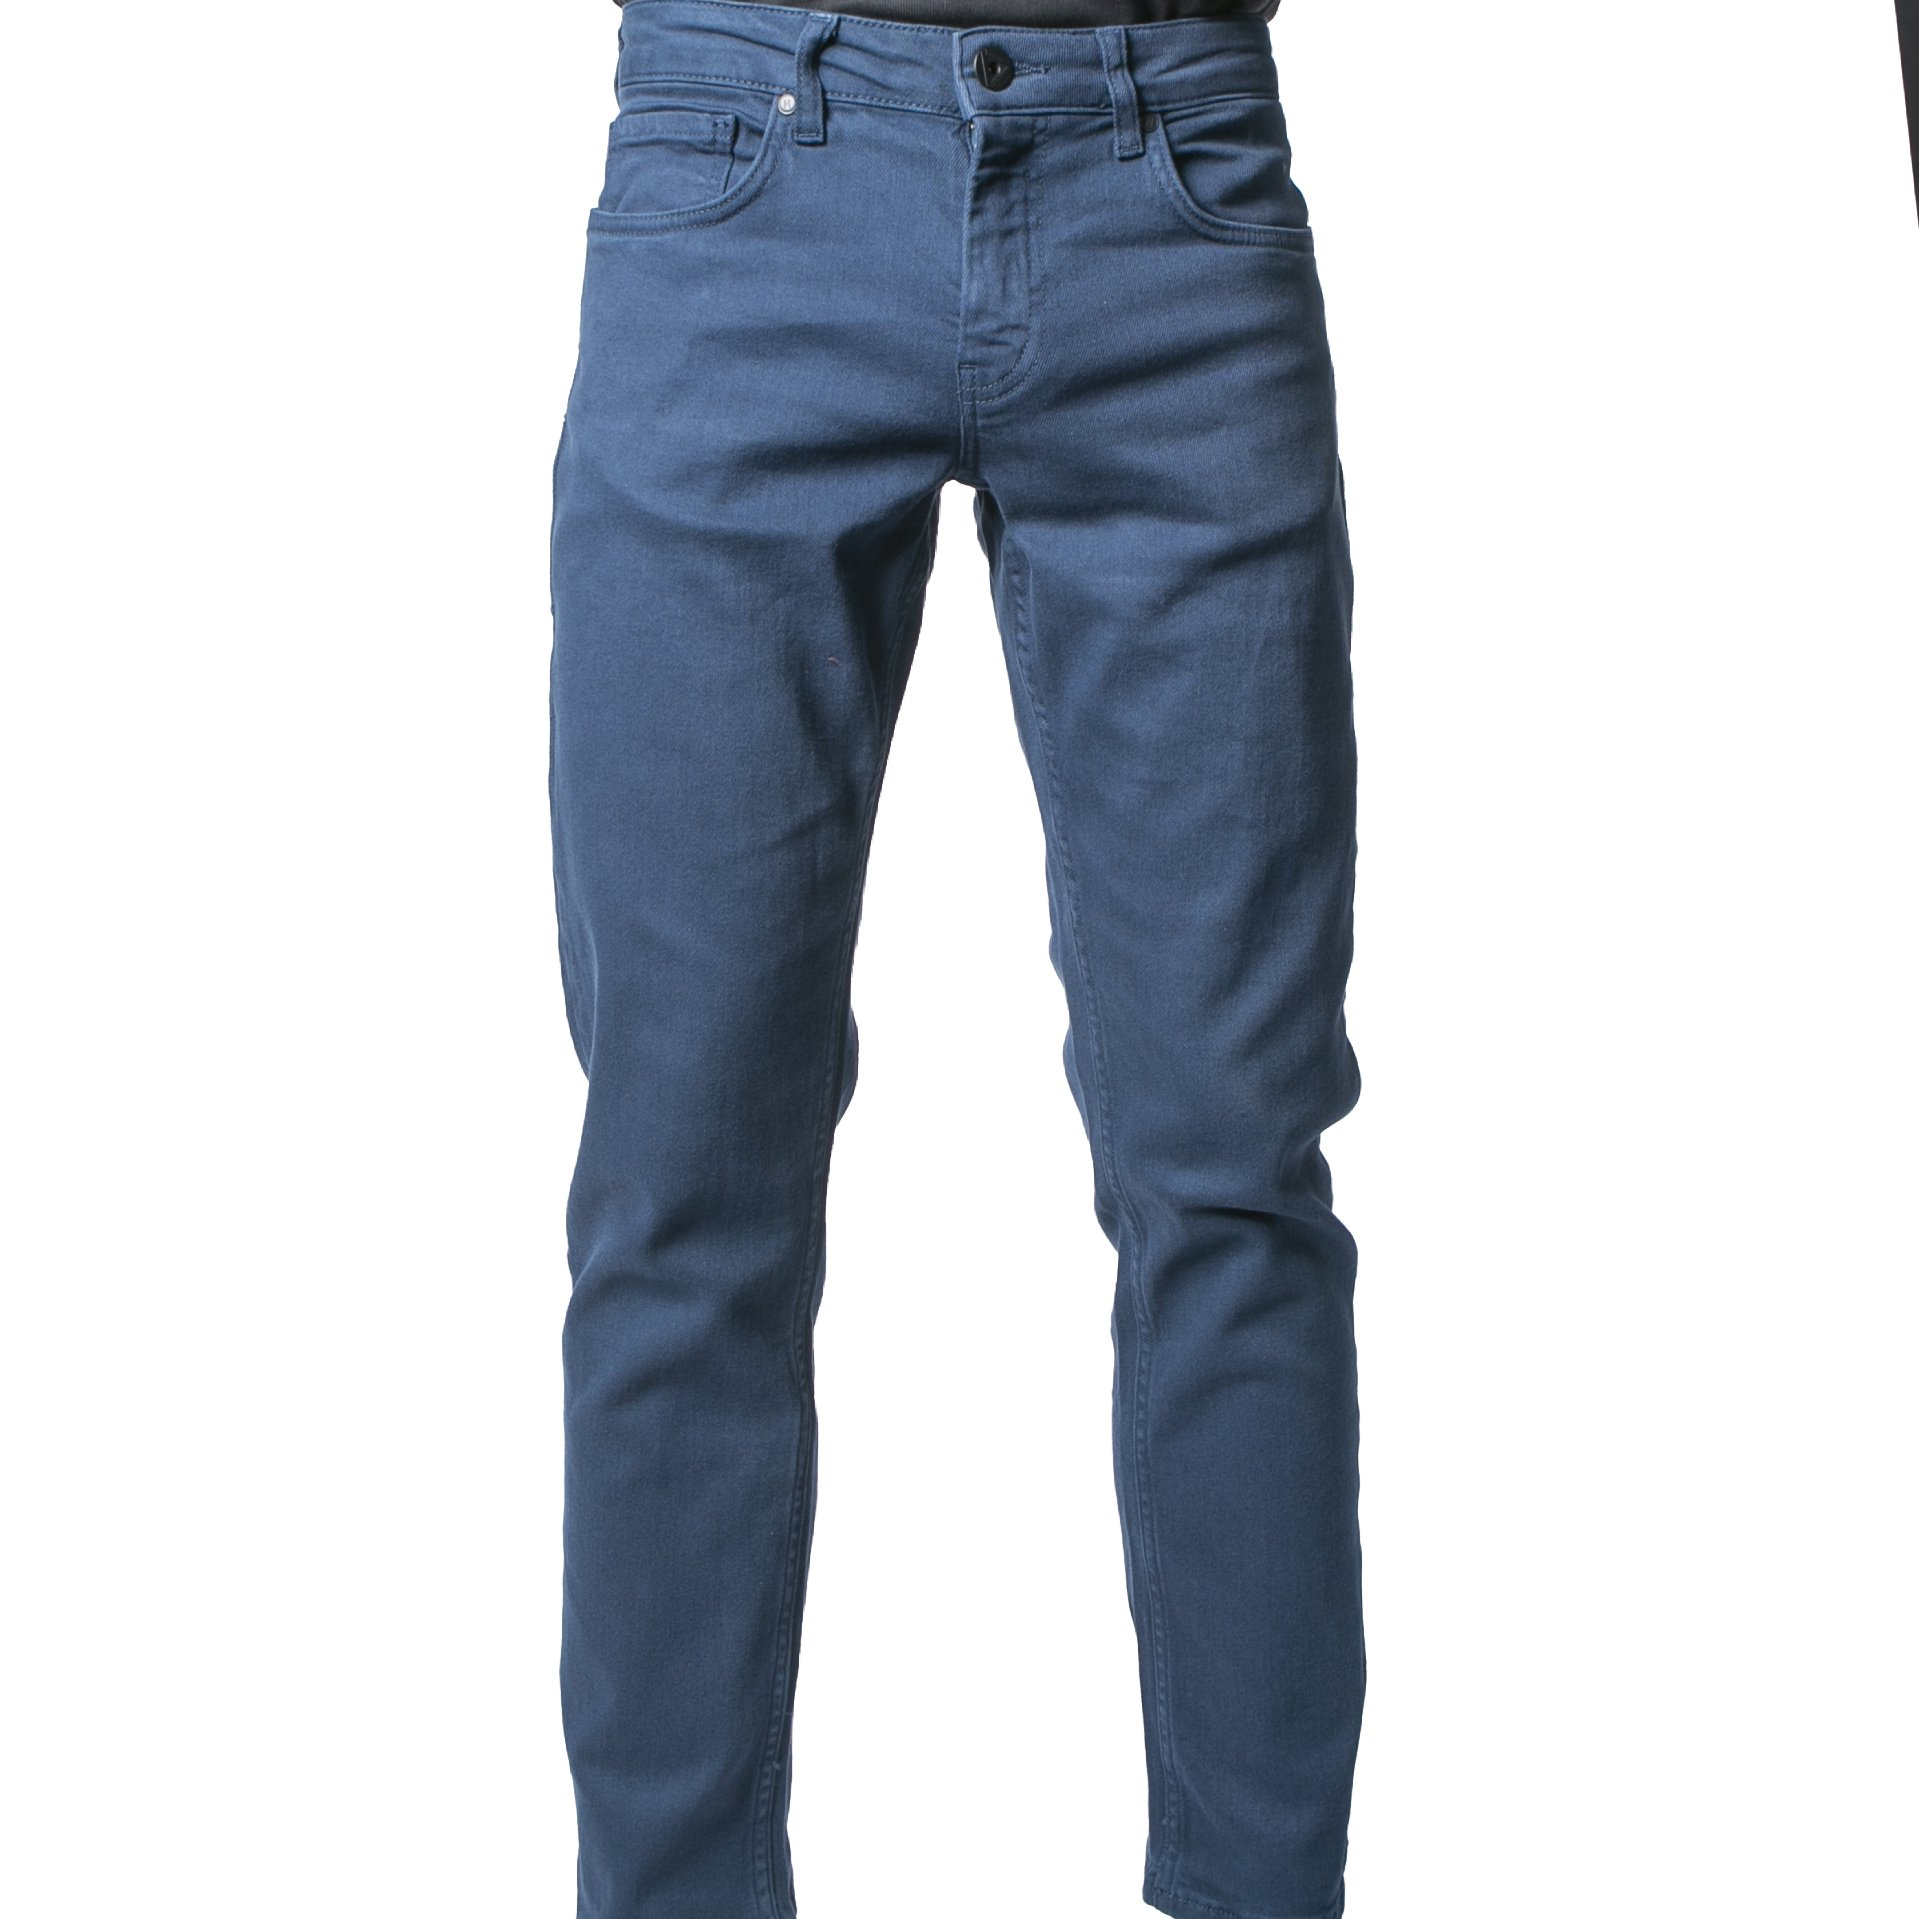 MOURO BLUE REGULAR FIT TWILL JEAN